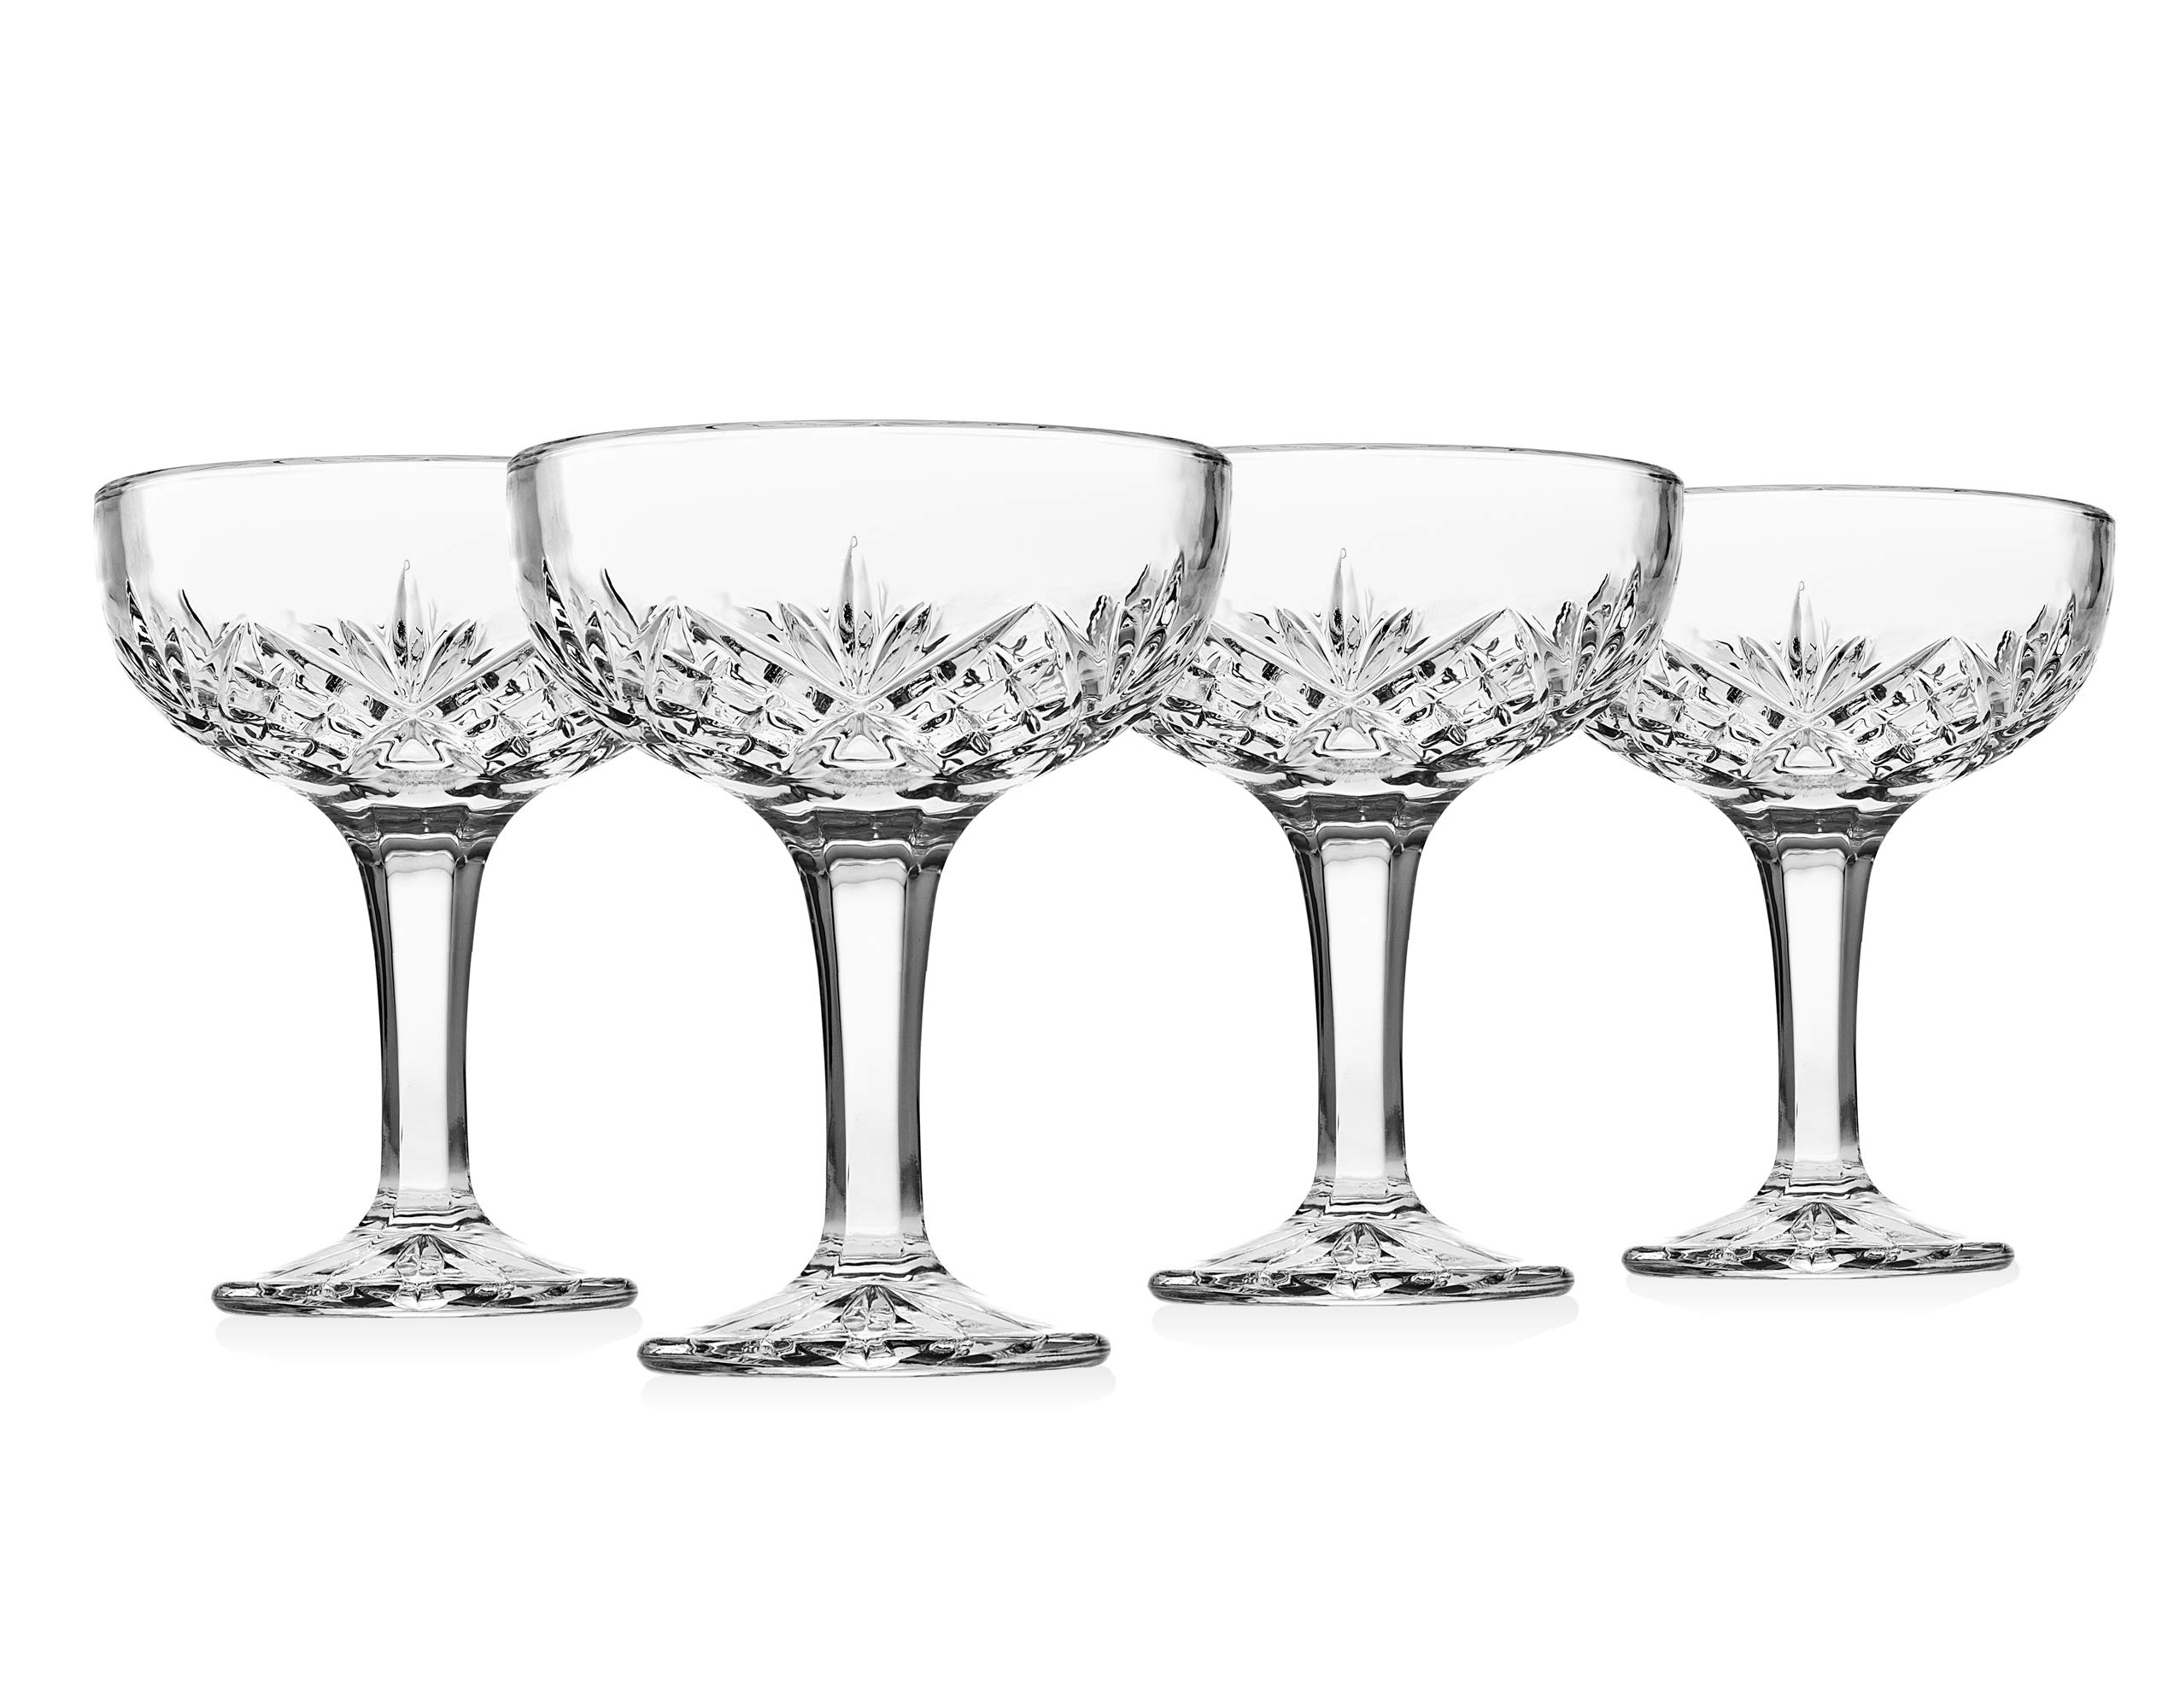 Godinger Champagne Coupe Barware Glasses – Set of 4, Dublin Crystal Collection